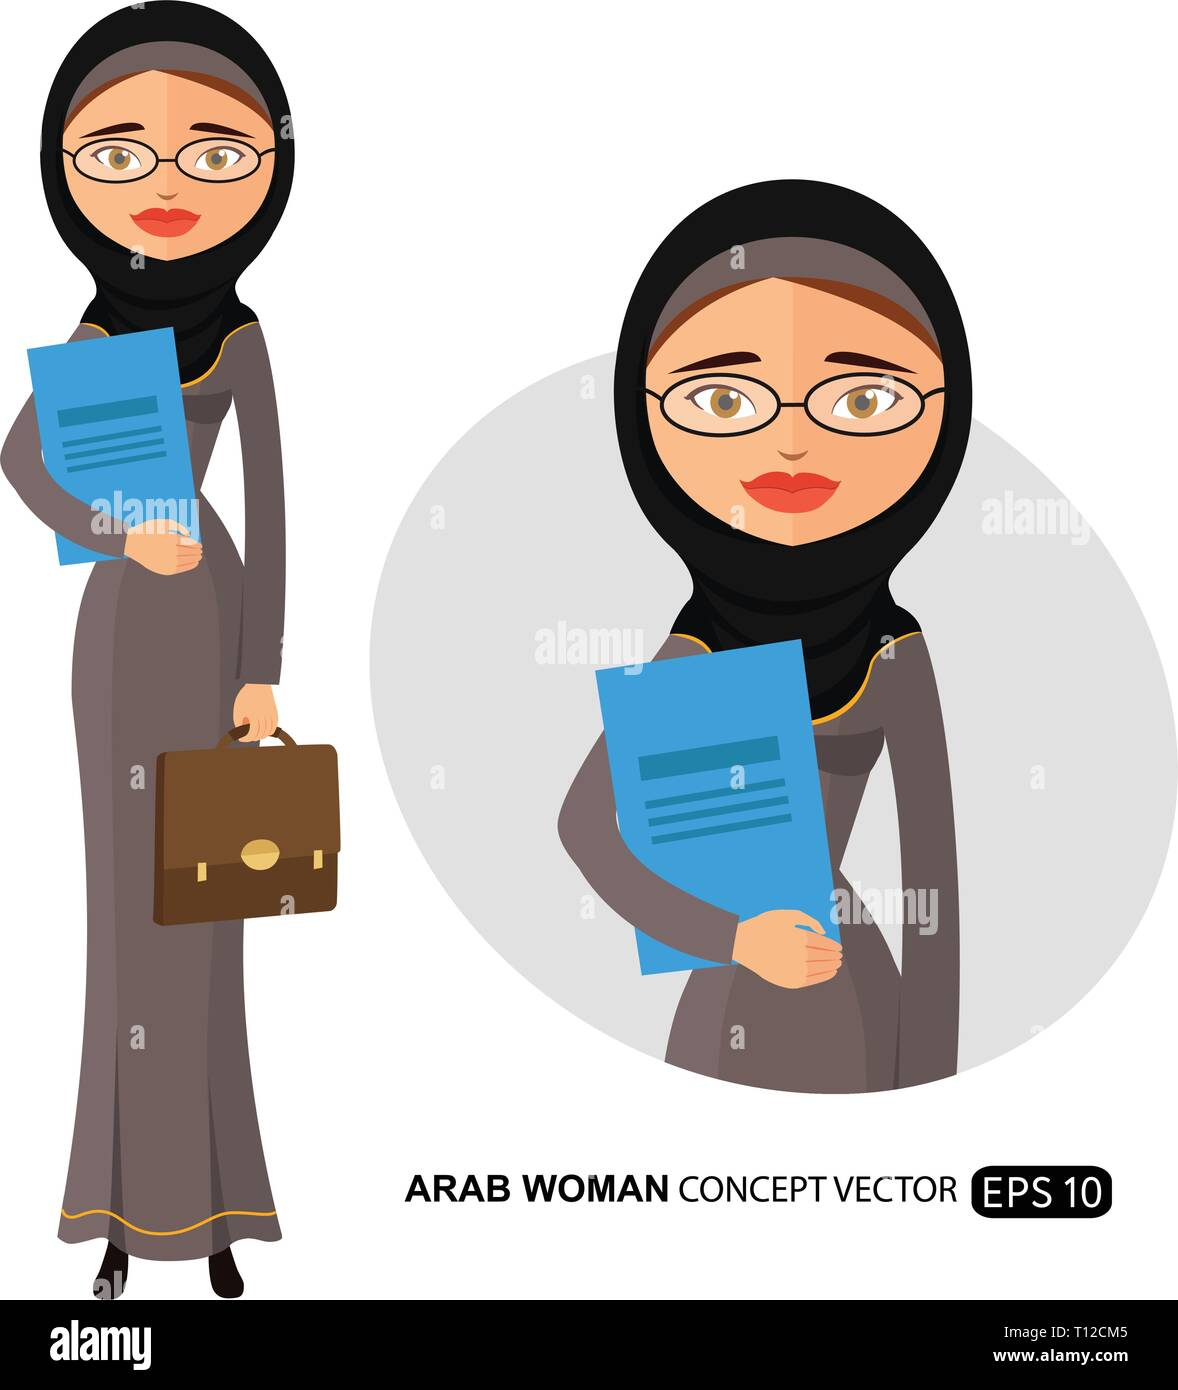 Arab business woman with glasses office worker is ready to work with spectacle woman secretary vector flat cartoon illustration eps 10 - Stock Vector